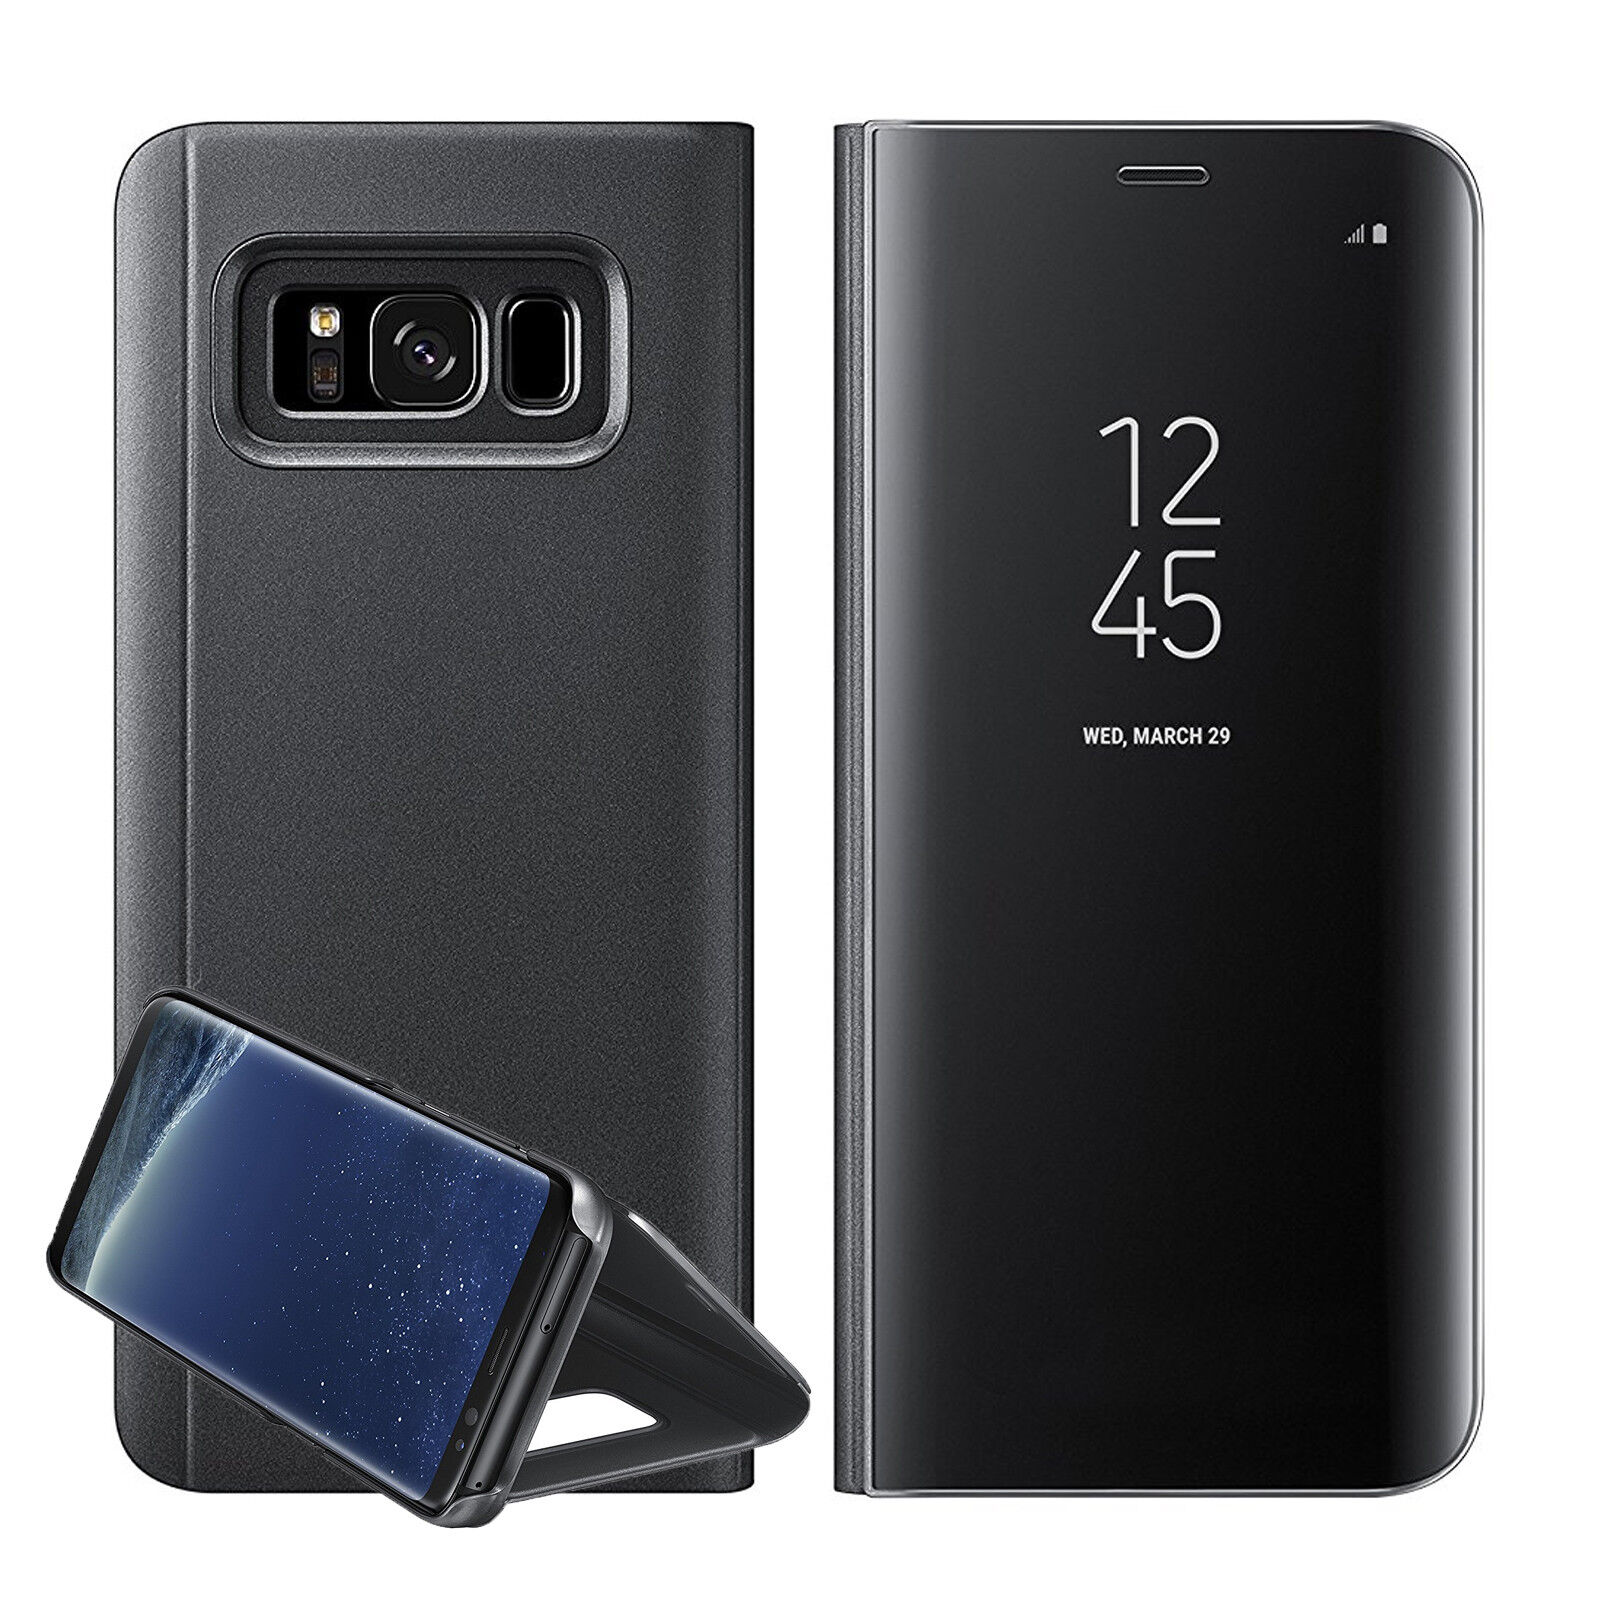 new samsung galaxy s7 s8 note 8 smart view mirror leather. Black Bedroom Furniture Sets. Home Design Ideas